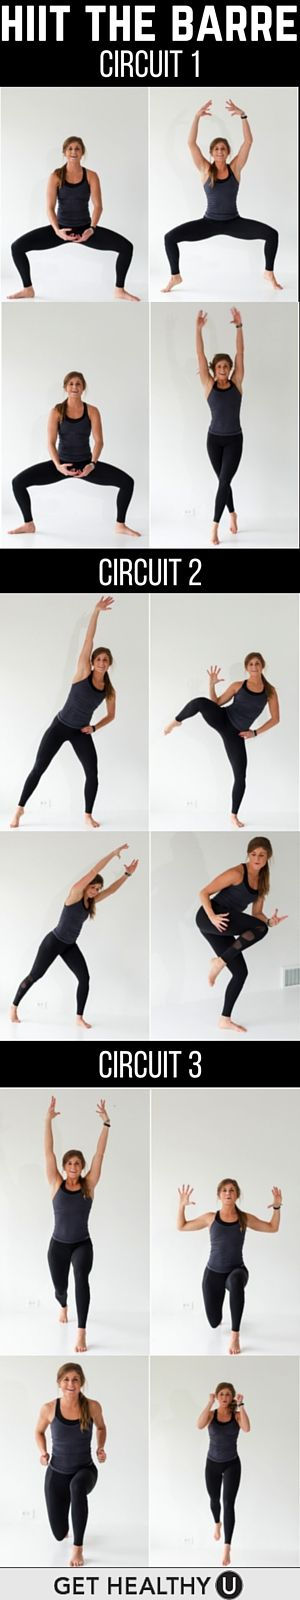 The super-efficient HIIT method of training is the ideal workout for a quick burn and barre is incredibly effective for transforming the so-called 'problem areas' for women. Meld these two training methods together and you have the perfect workout for the modern day, busy women. Here are 3 ways to HIIT the barre!